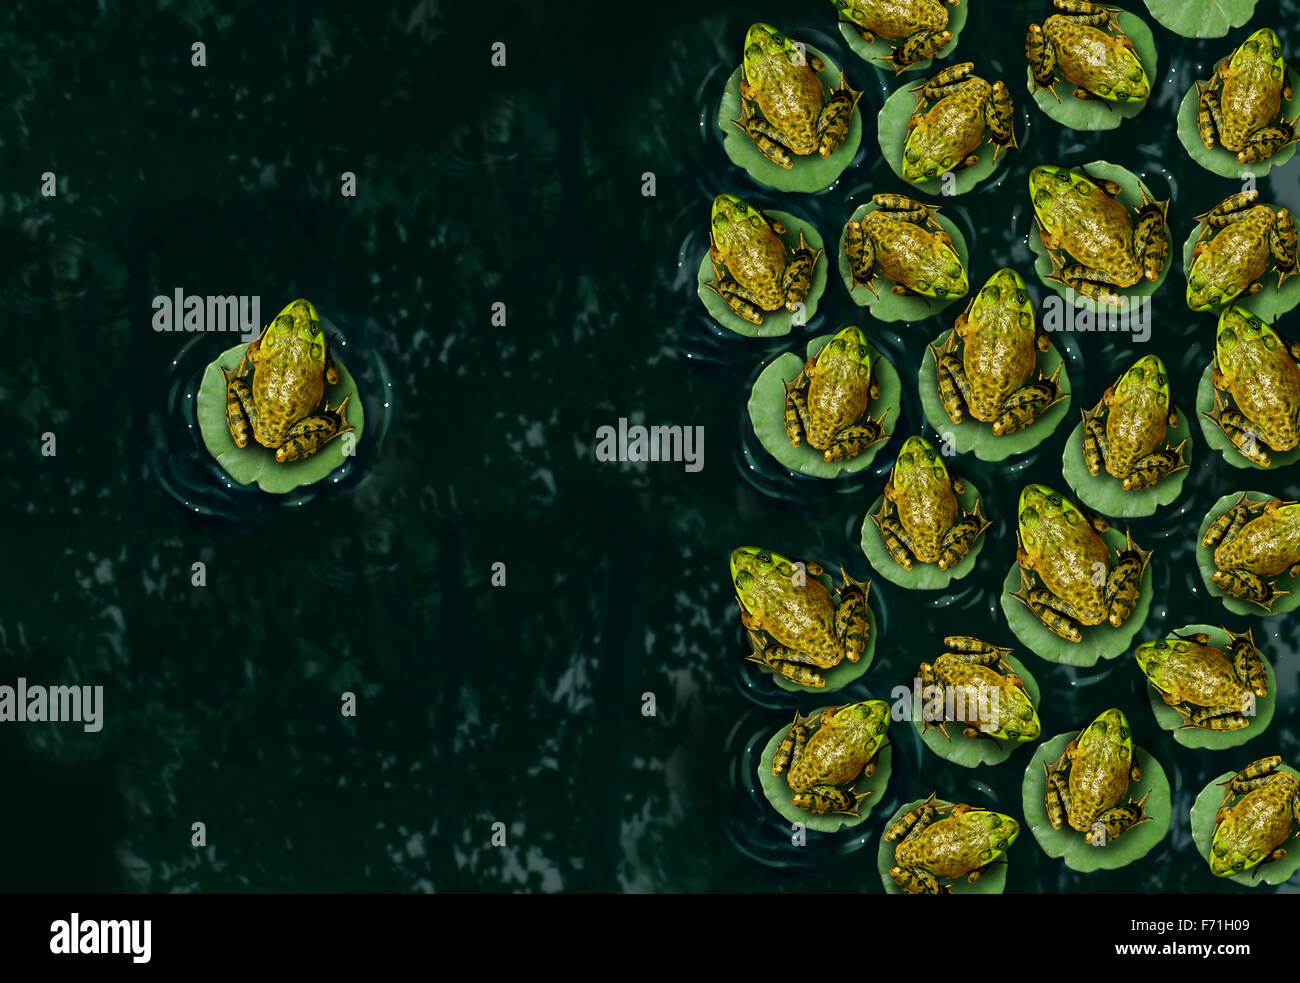 Individualism and confidence or individuality symbol and independent thinker concept as a group of green frogs resting - Stock Image